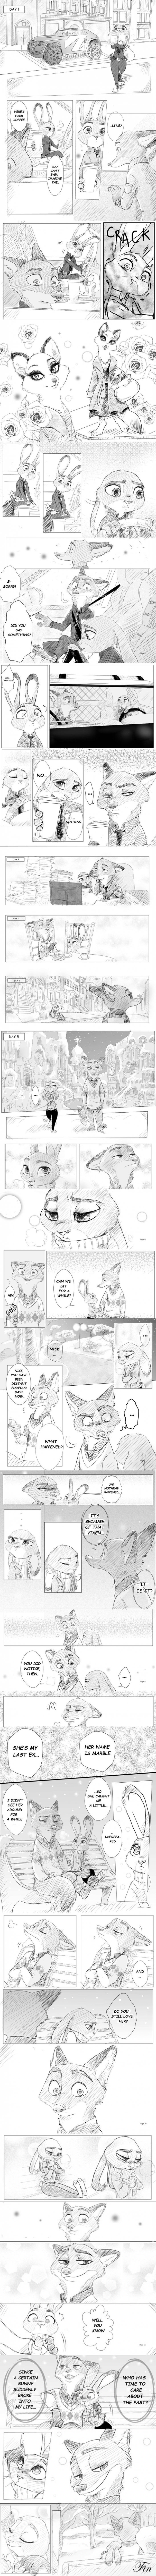 Newest Zootopia comic (by Rem289) <-- THIS WAS AMAZING AARGH!! SO FREAKING CUUUUTEEEE!!!